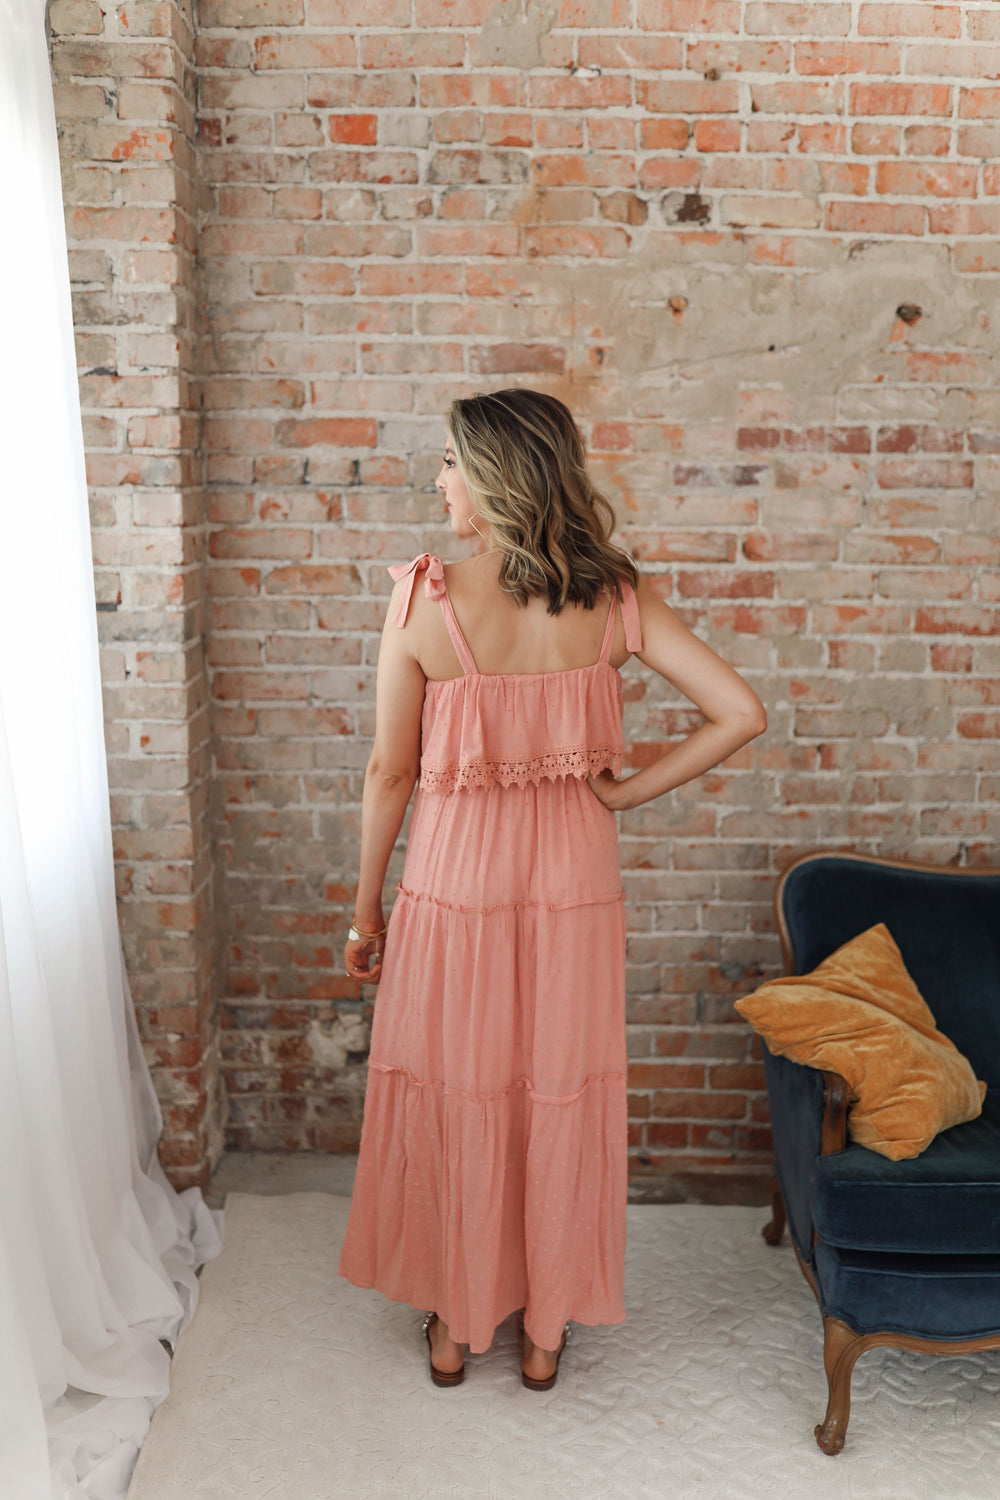 Coral Bounce Maxi Dress Inspired by Shelby Ditch